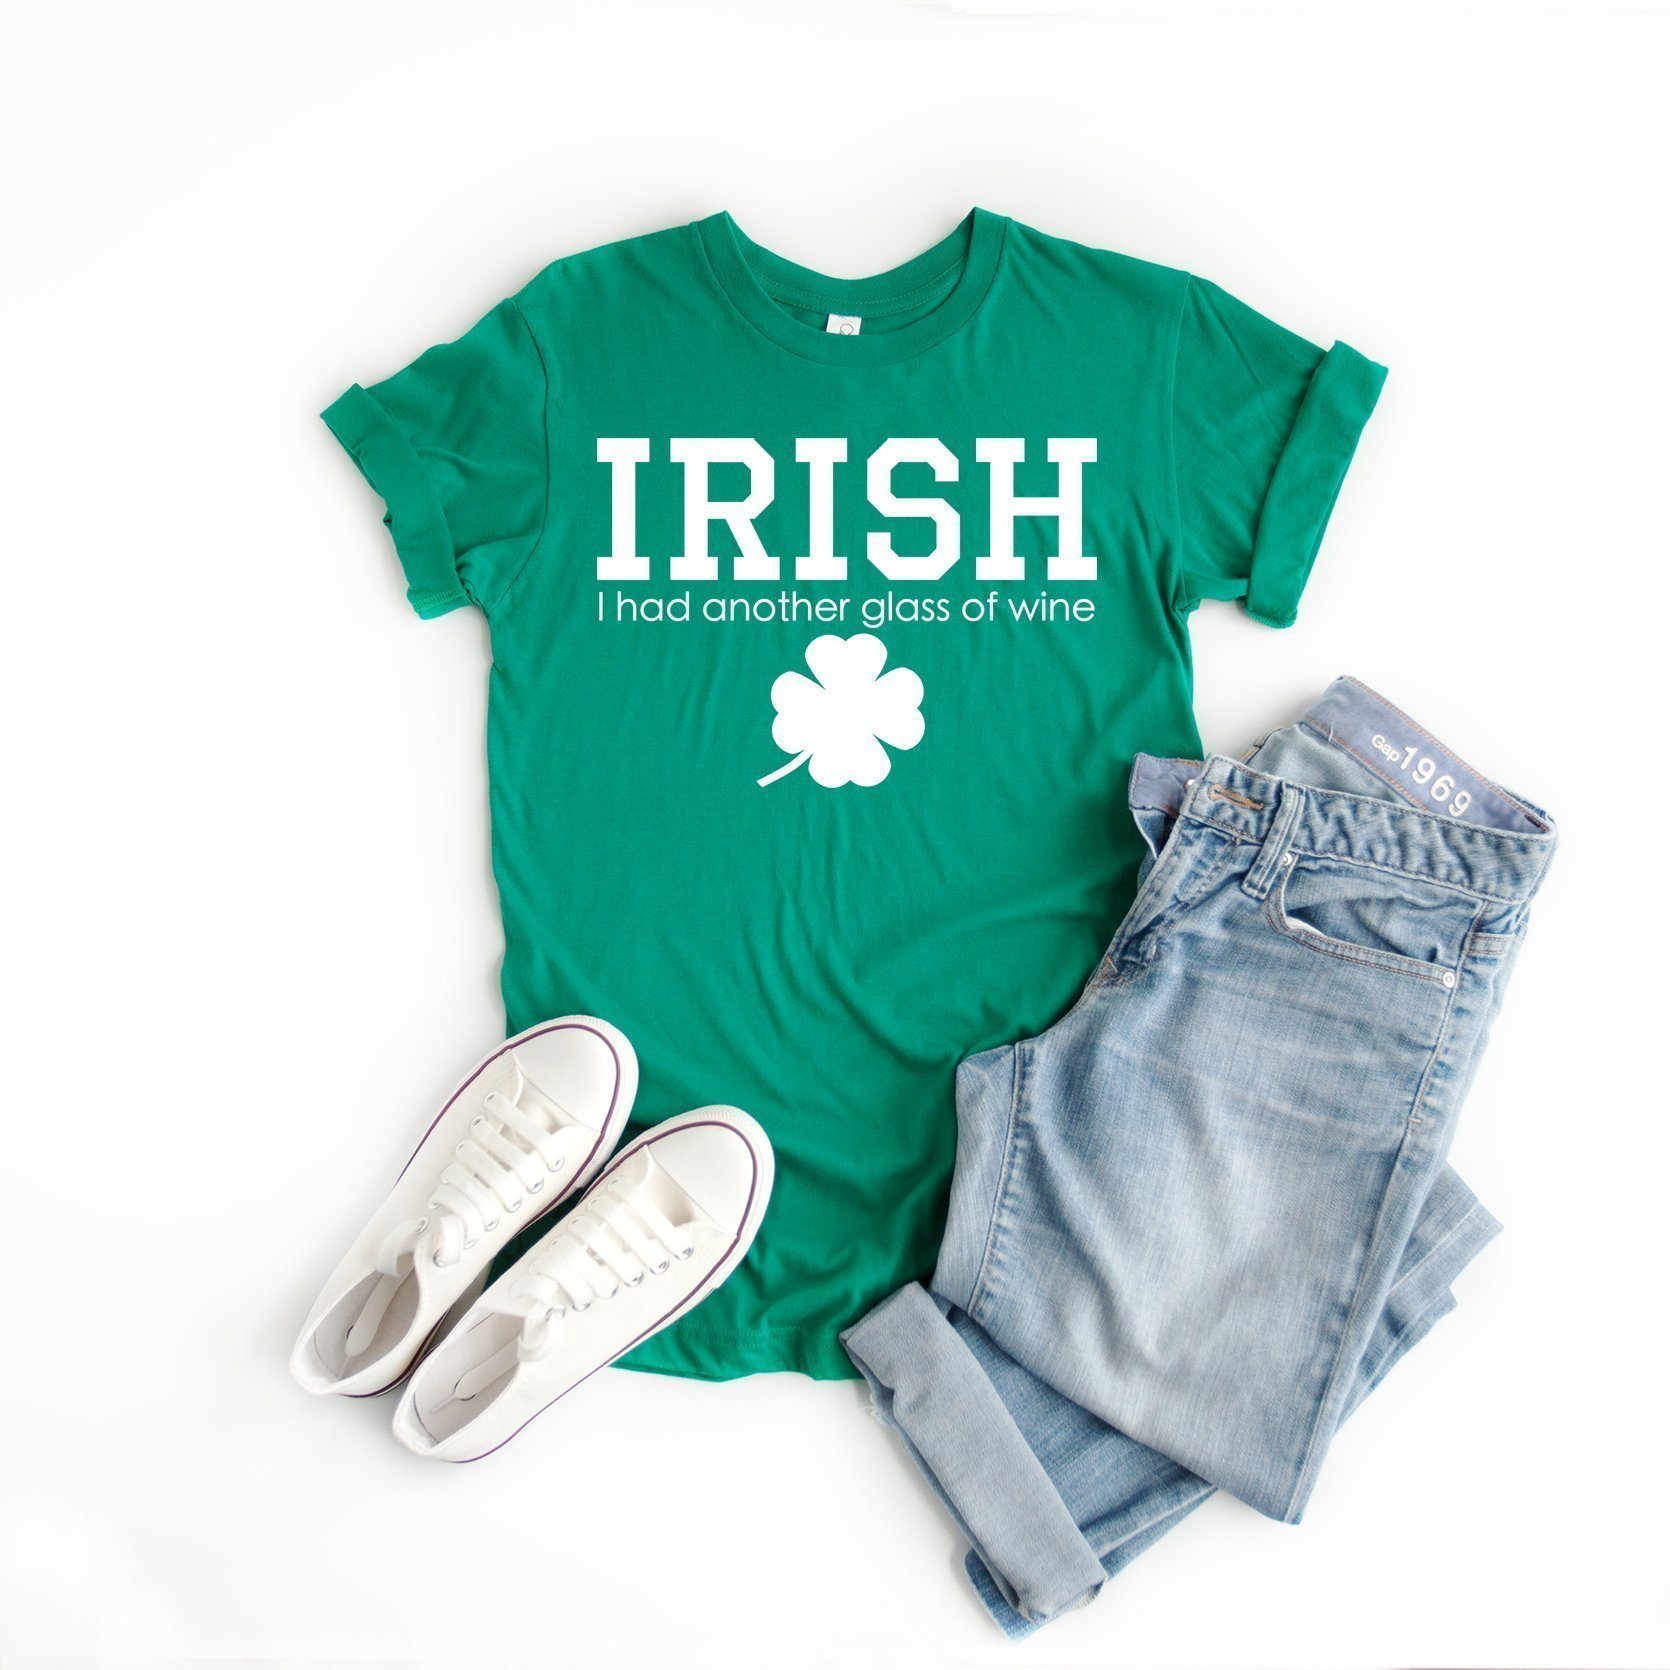 Irish I had another glass of wine t-shirt